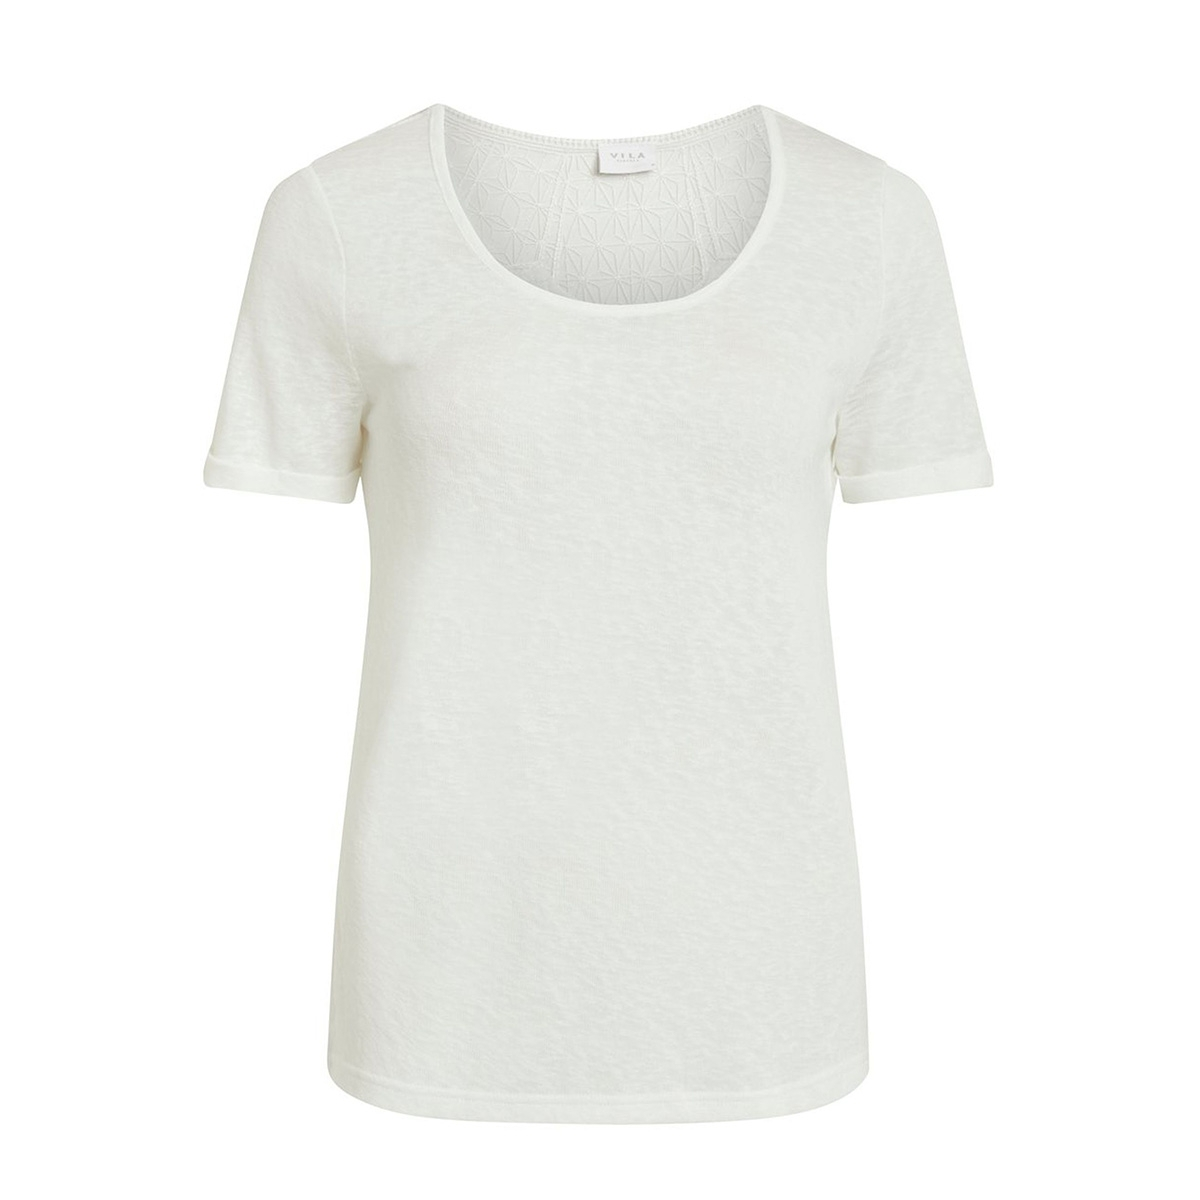 visumi s/s new back lace top- noos 14052655 vila t-shirt snow white